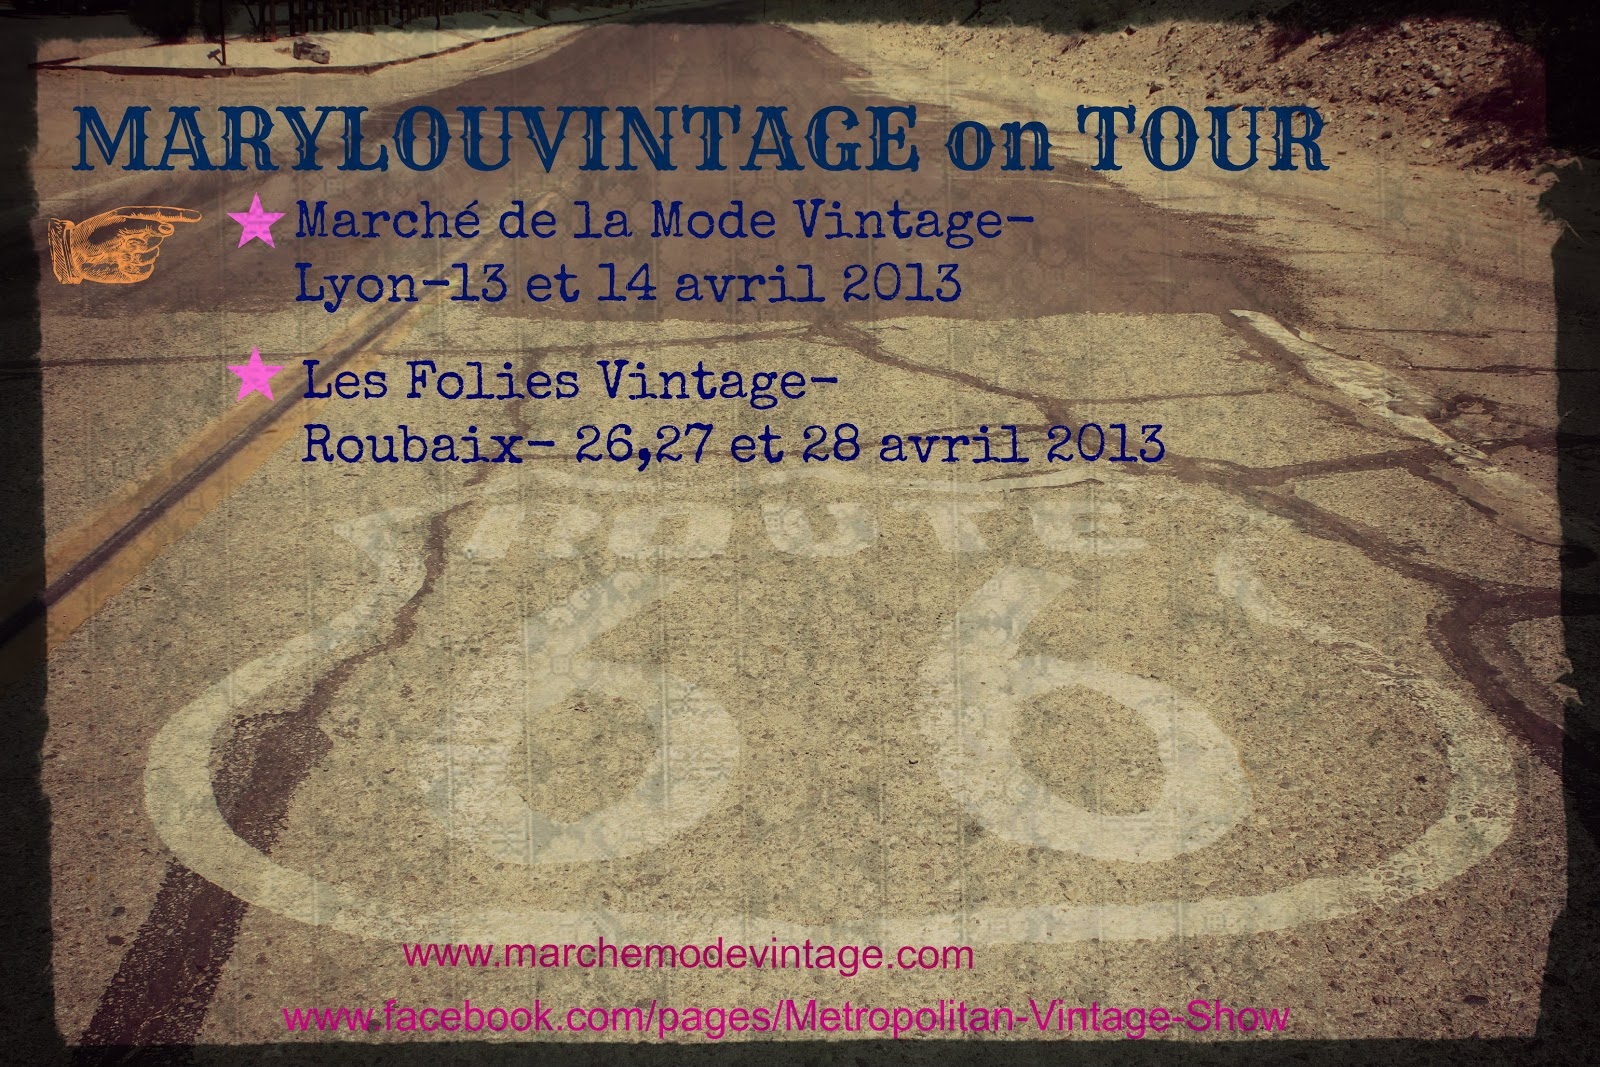 Marylou vintage v tements vintage marylouvintage on tour - Salon de la mode vintage lyon ...